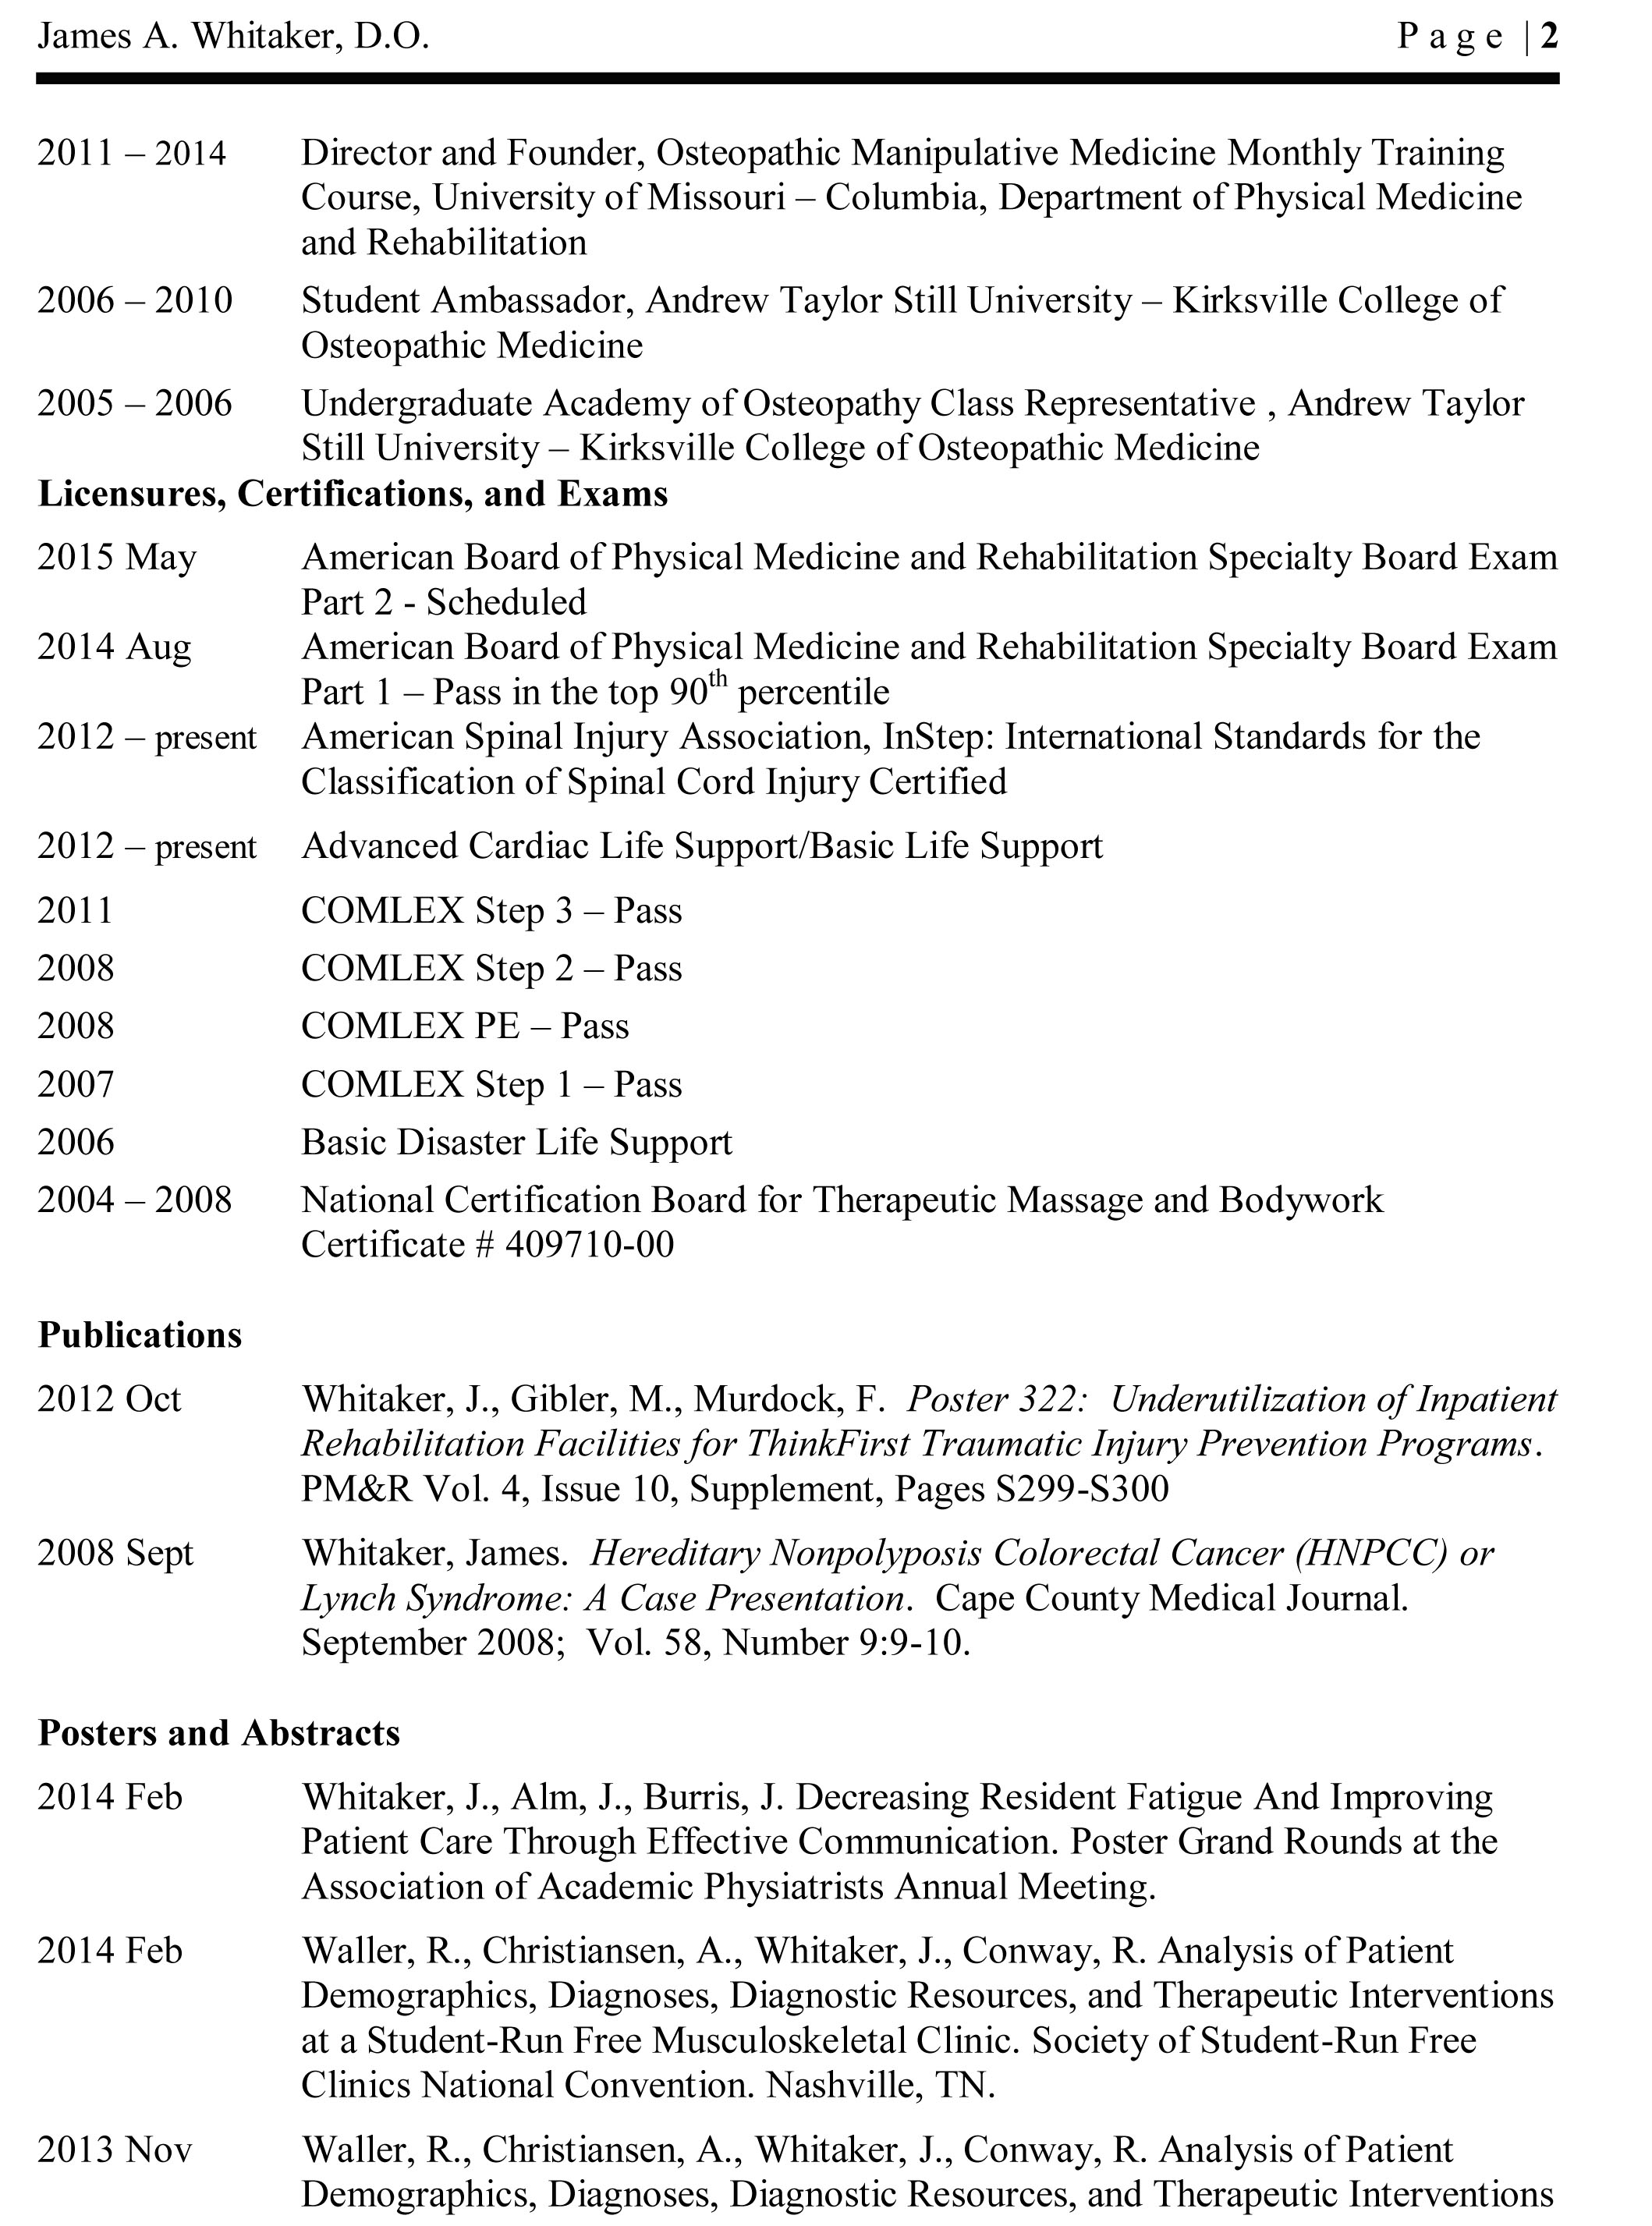 Cv page 2 idaho joint and spine cv page 2 xflitez Gallery